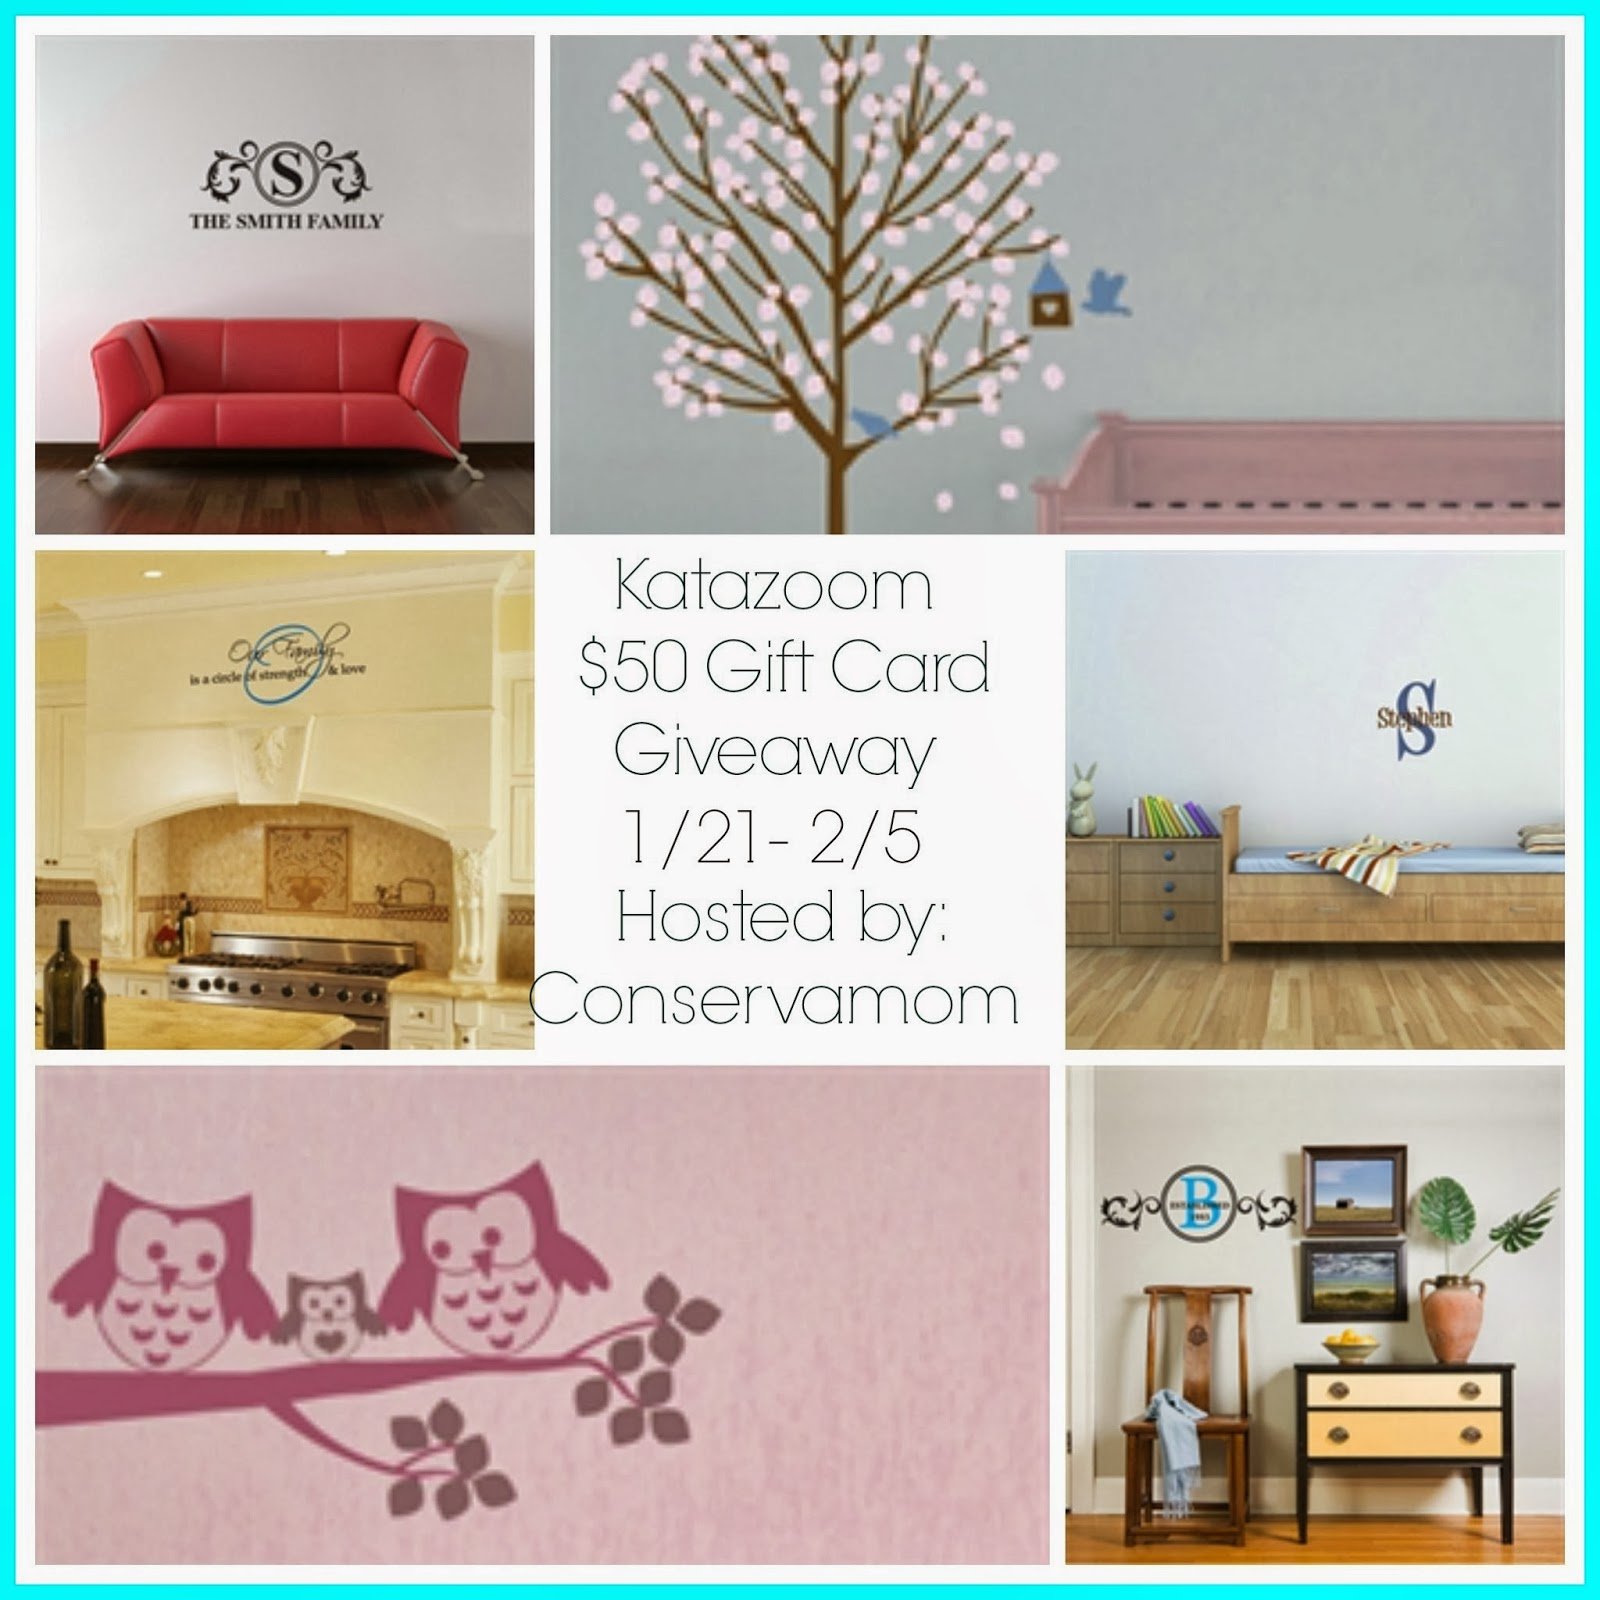 Enter to win the Katazoom $50 Gift Card Giveaway. Ends 2/5.